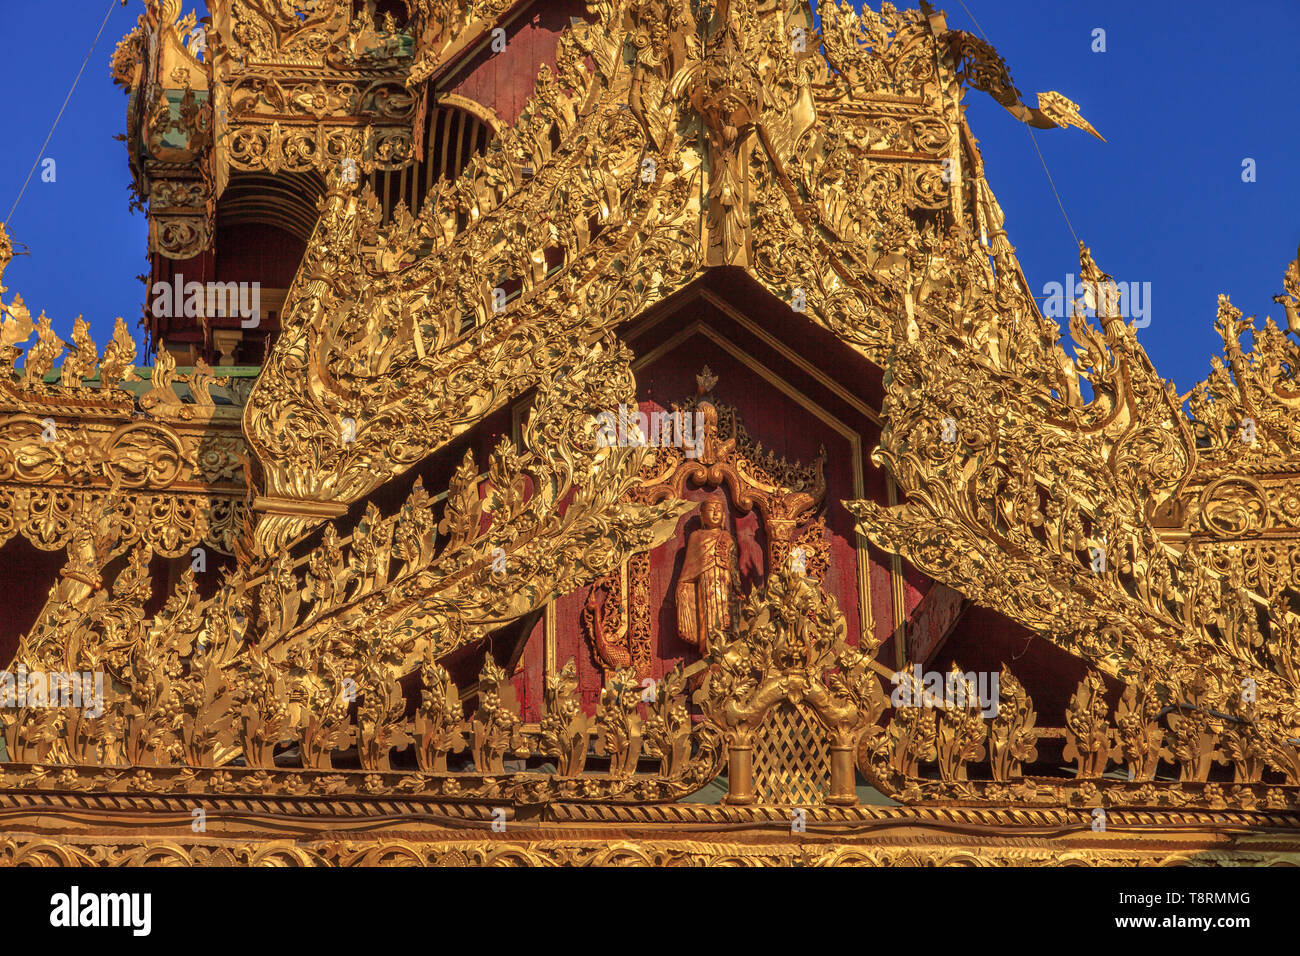 Detail of a decoration of th Sule pagoda in Yangoon (Myanmar) - Stock Image